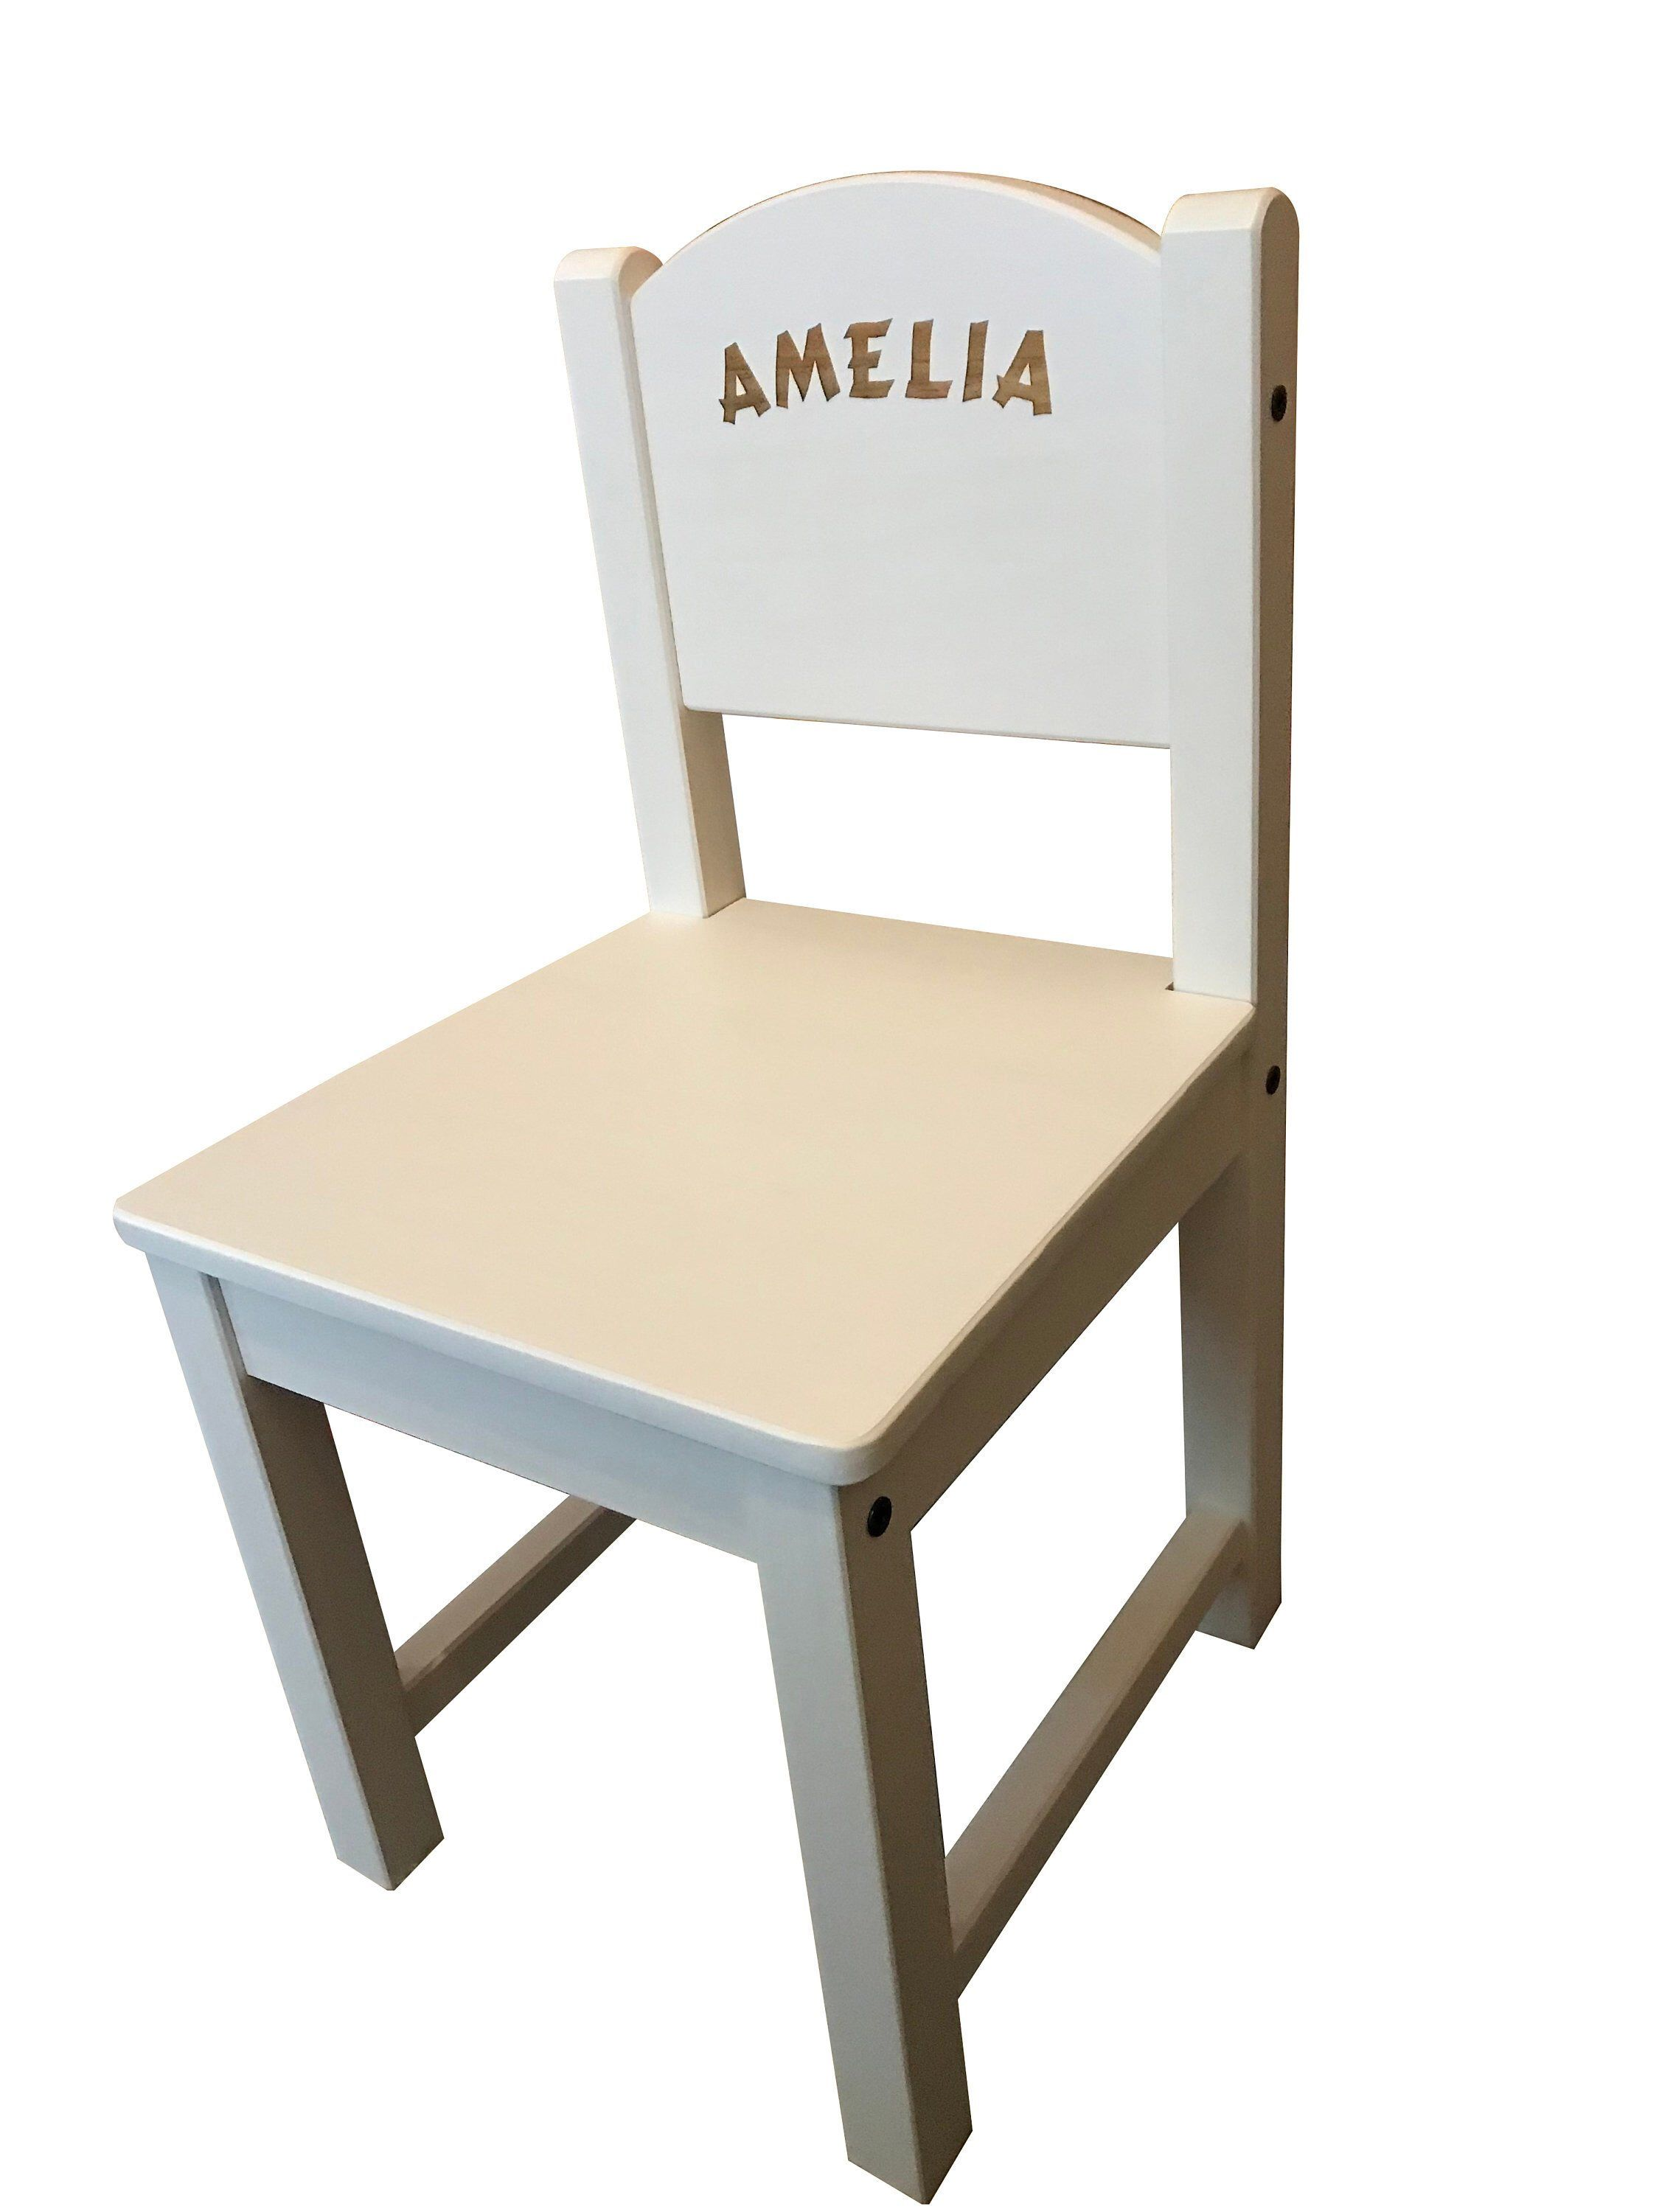 Terrific Personalised Childrens Kids Ikea White Wooden Chair Engraved Pdpeps Interior Chair Design Pdpepsorg